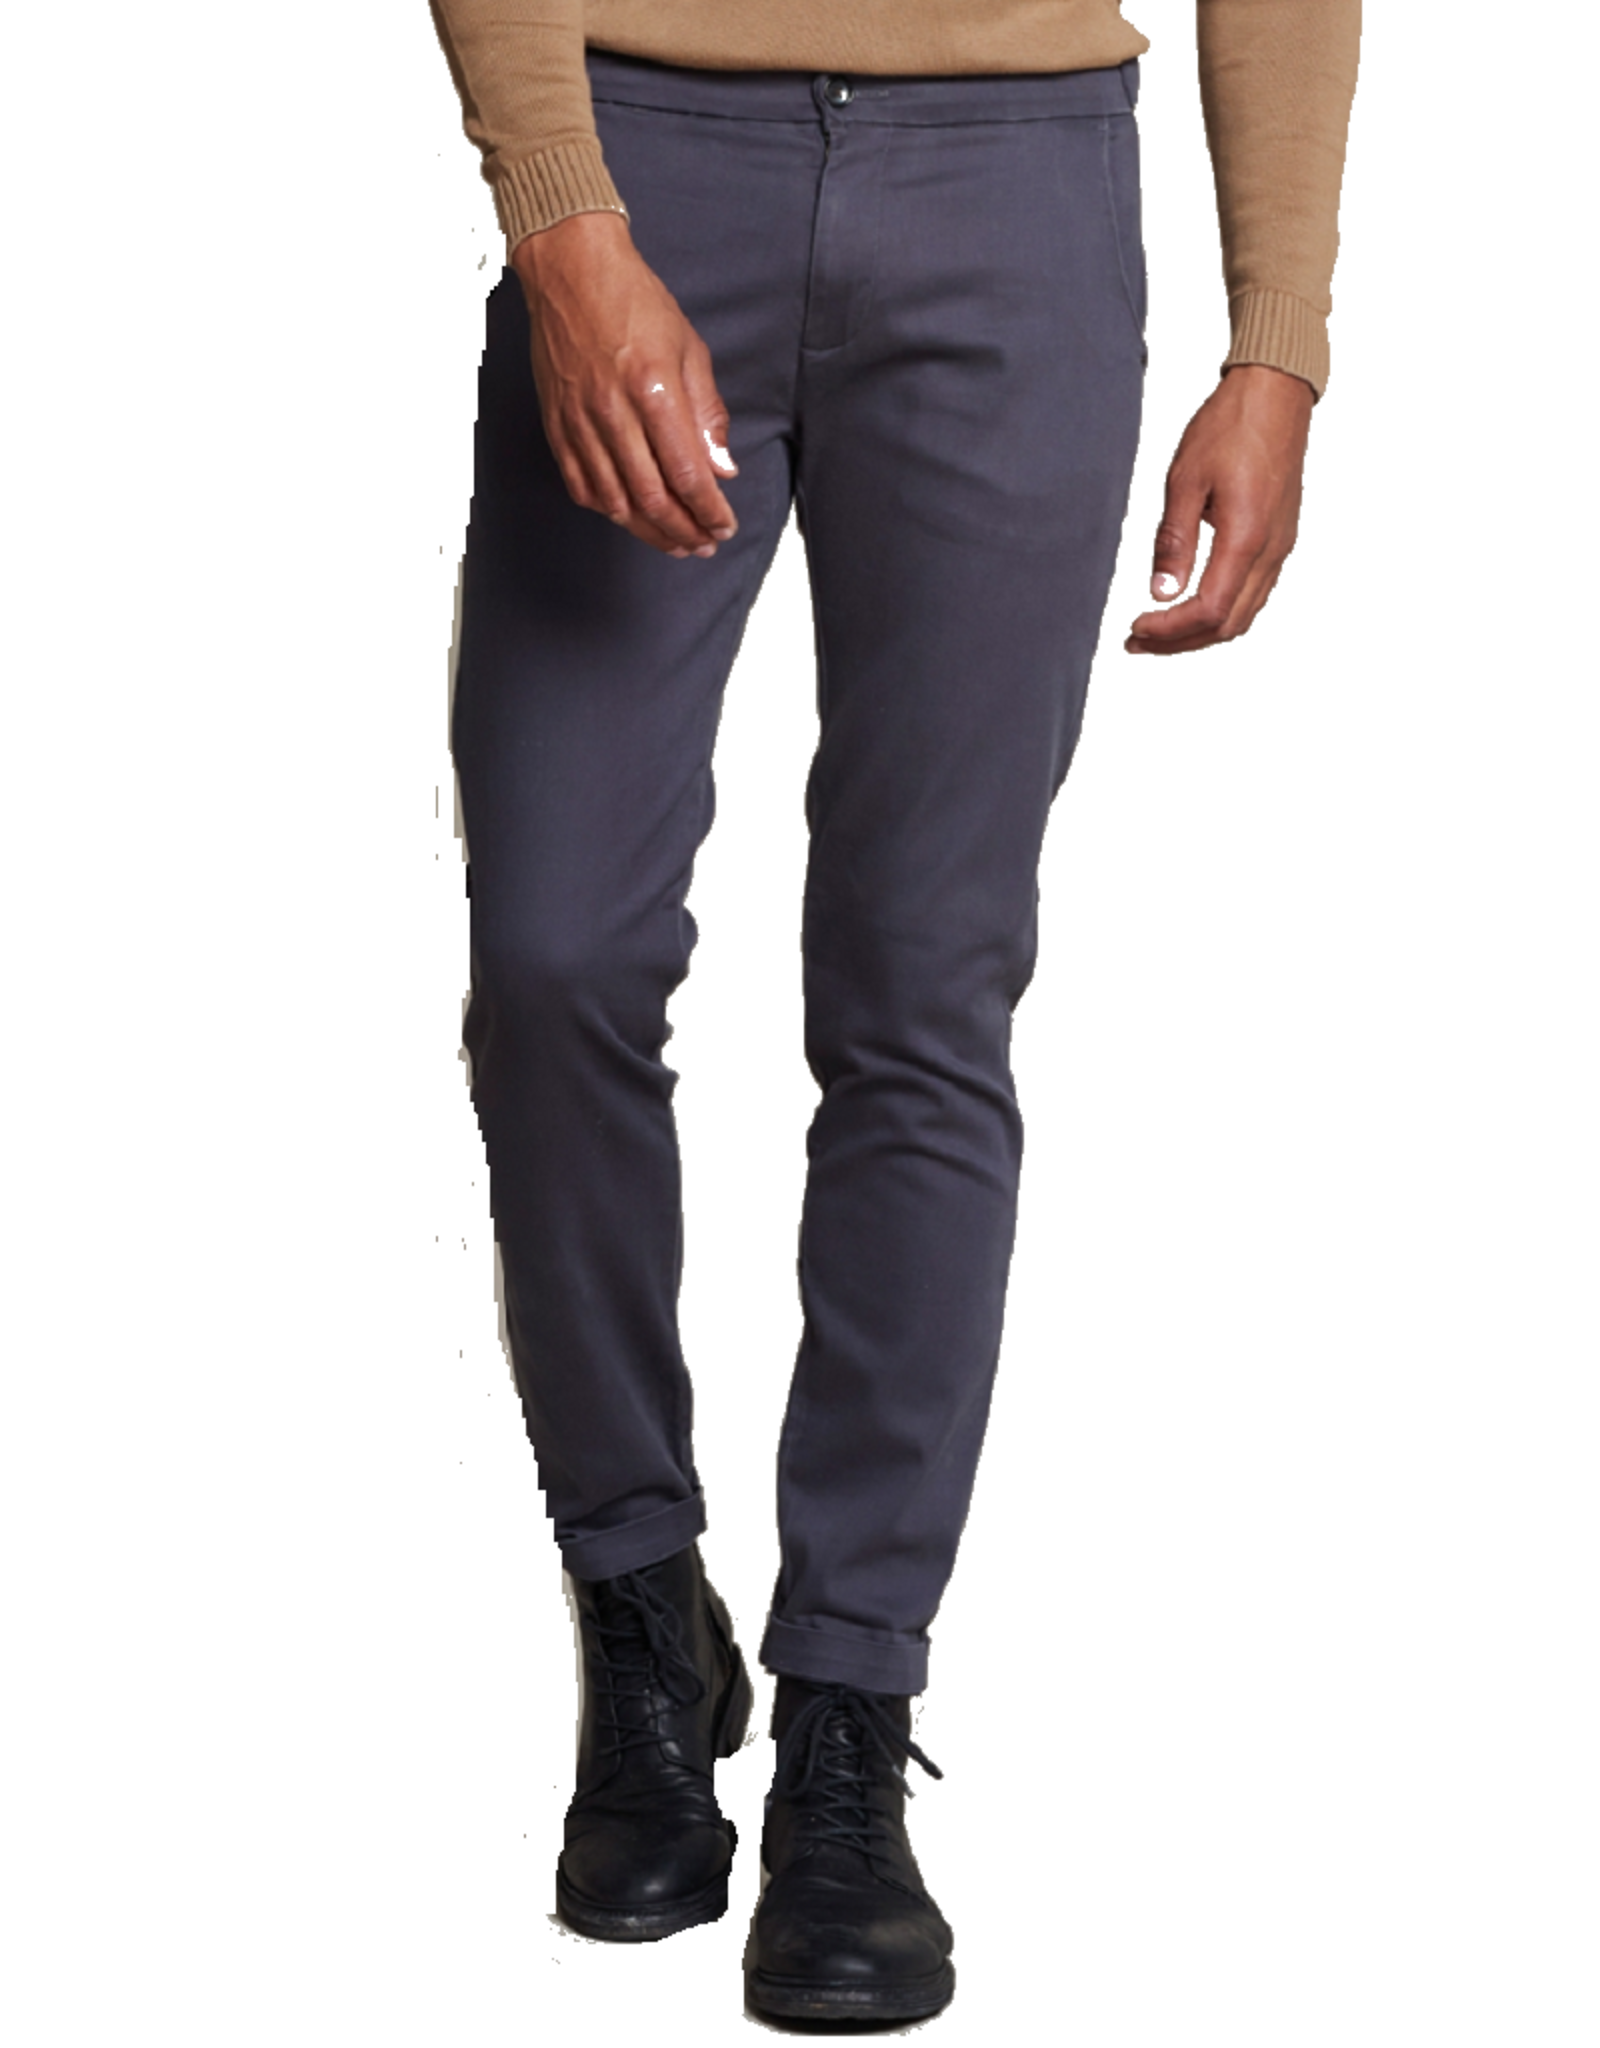 Dstrezzed Dstrezzed Lancaster Chino Pants With Straps Peach Flex Twill Anthra